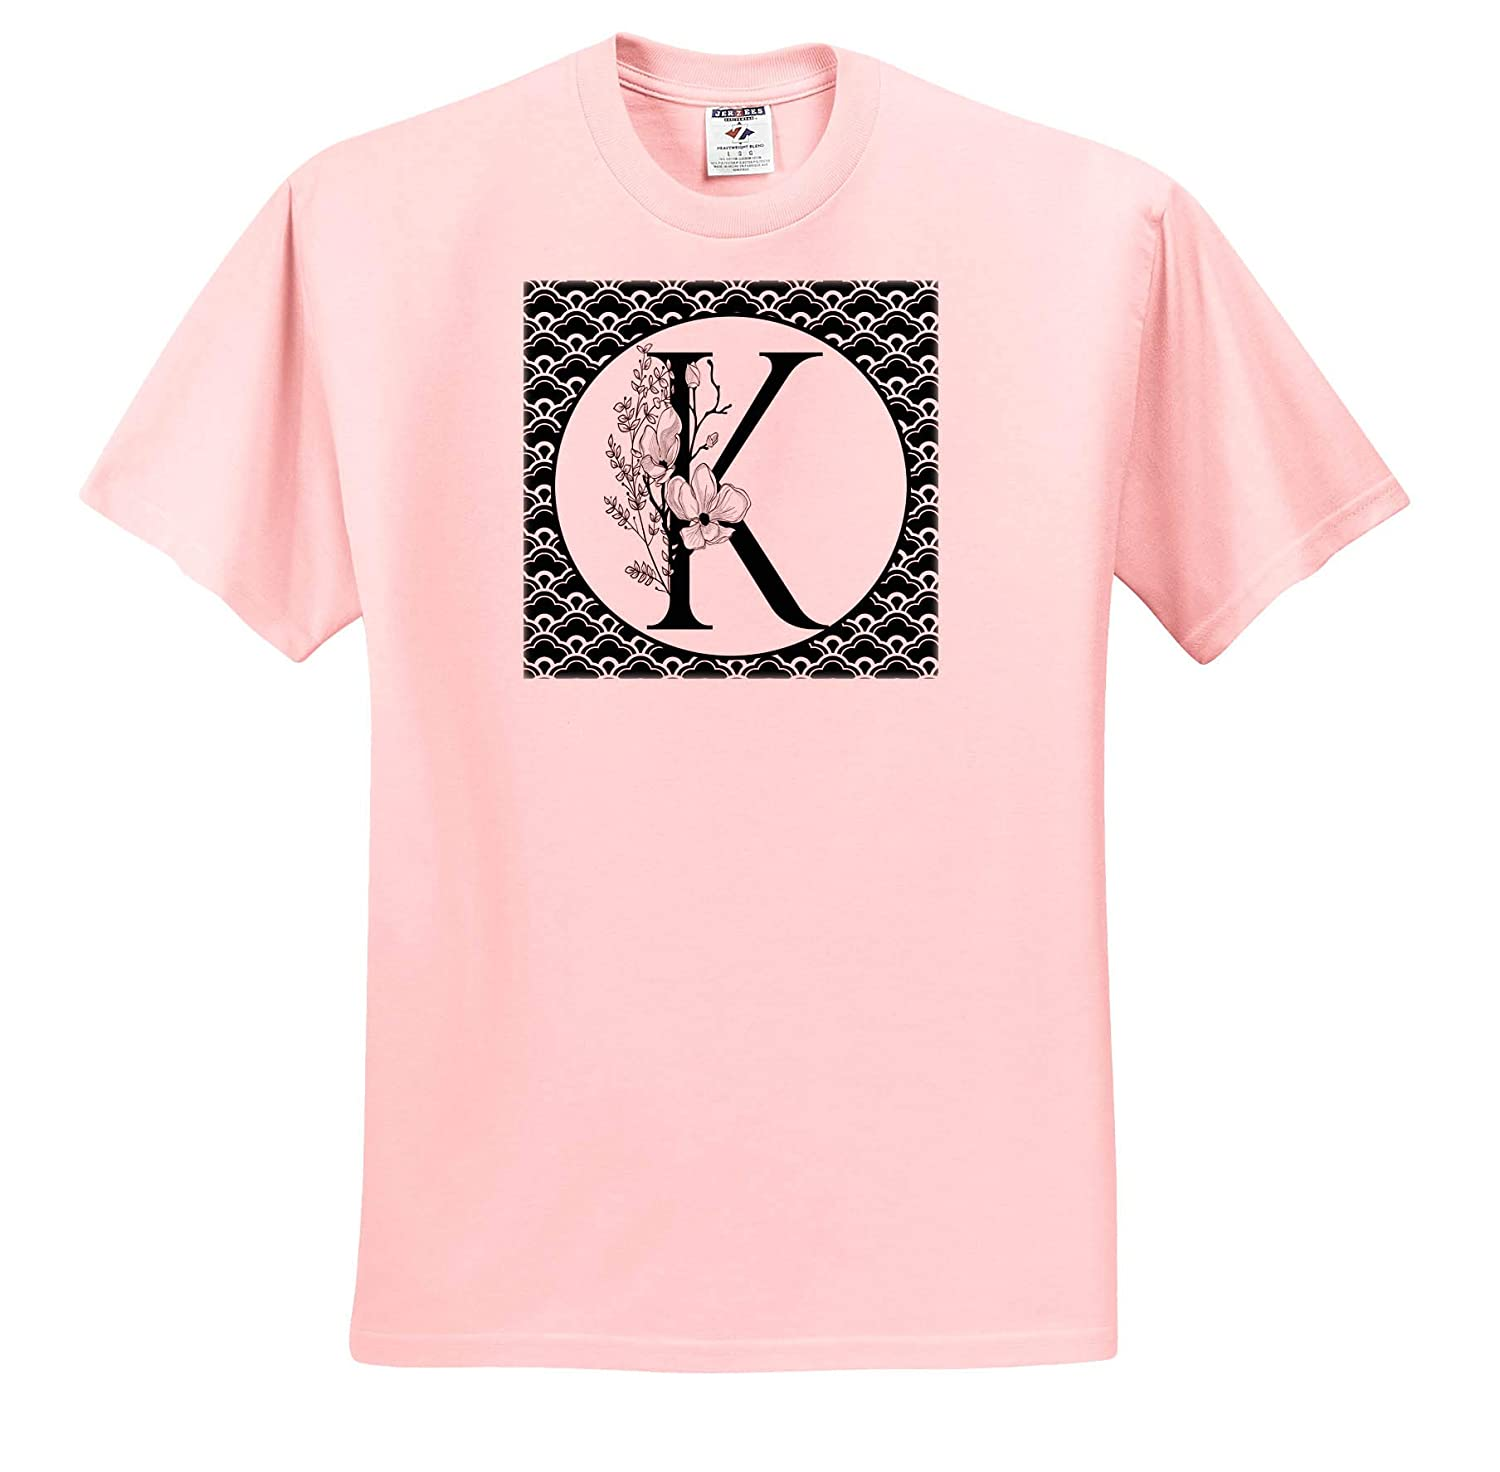 ts/_318036 Black and White Floral Monogram K On Fancy Scallops Adult T-Shirt XL Monograms 3dRose Anne Marie Baugh